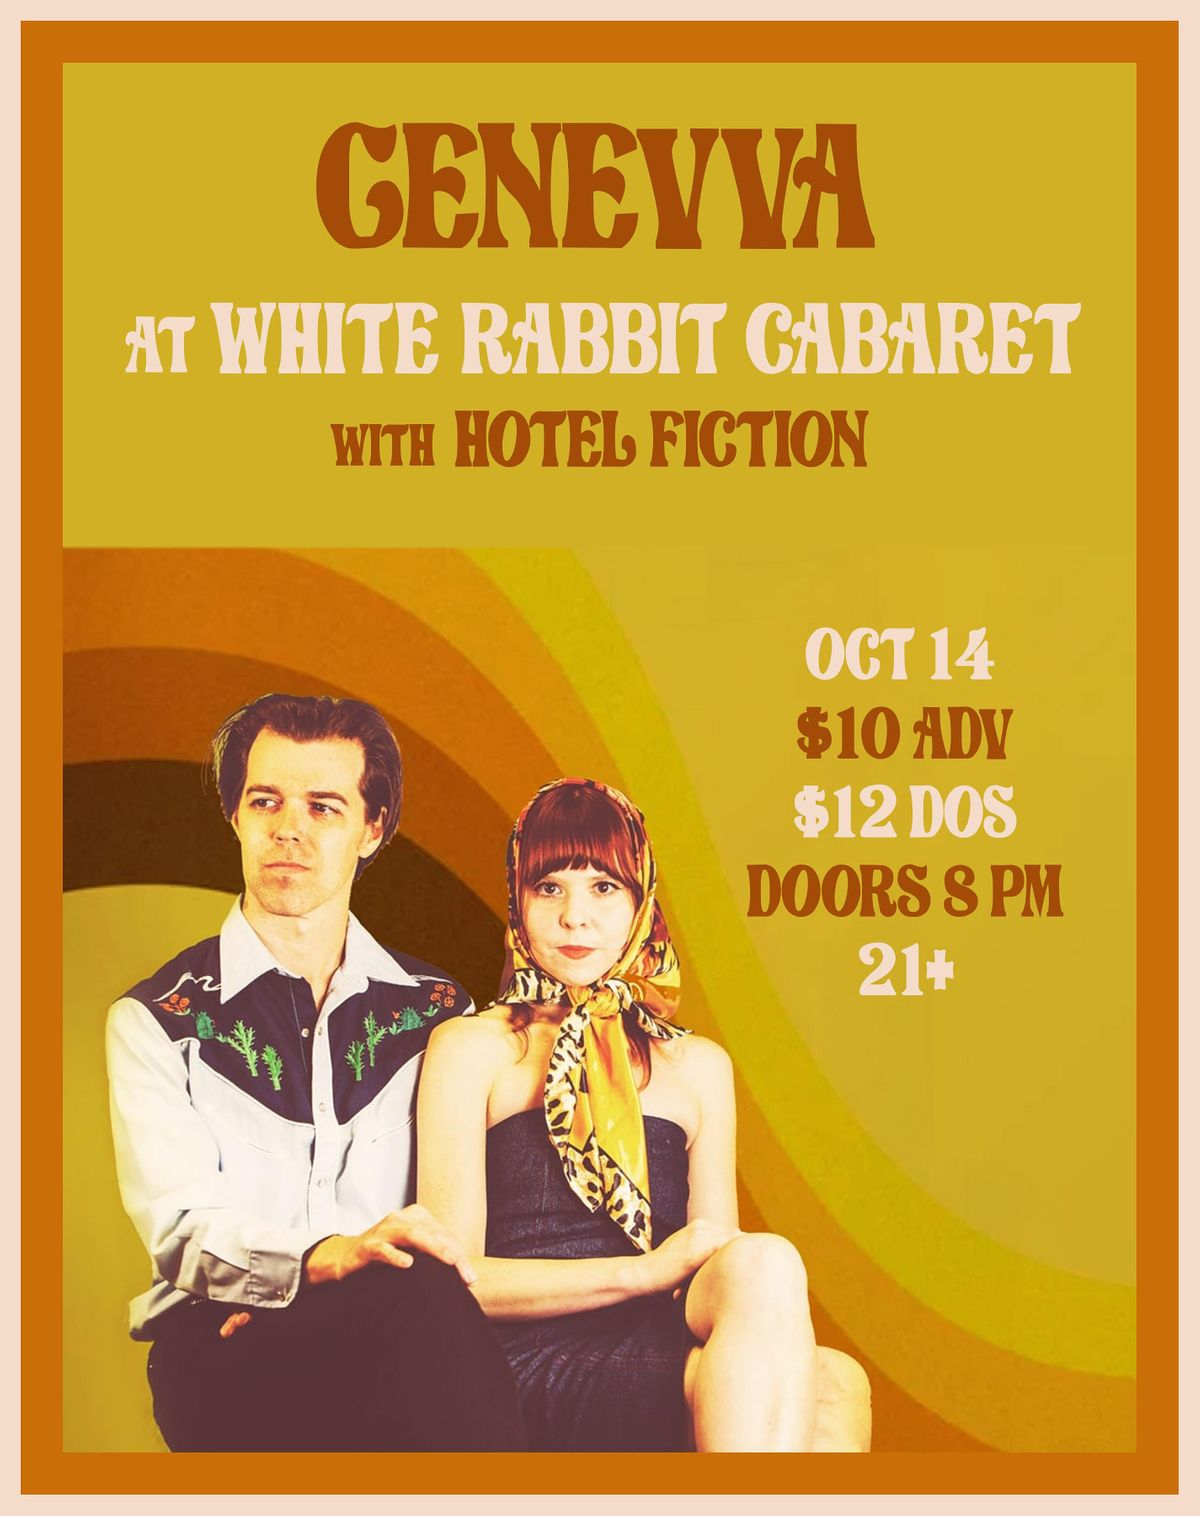 Genevva with Hotel Fiction | Event in Indianapolis | AllEvents.in